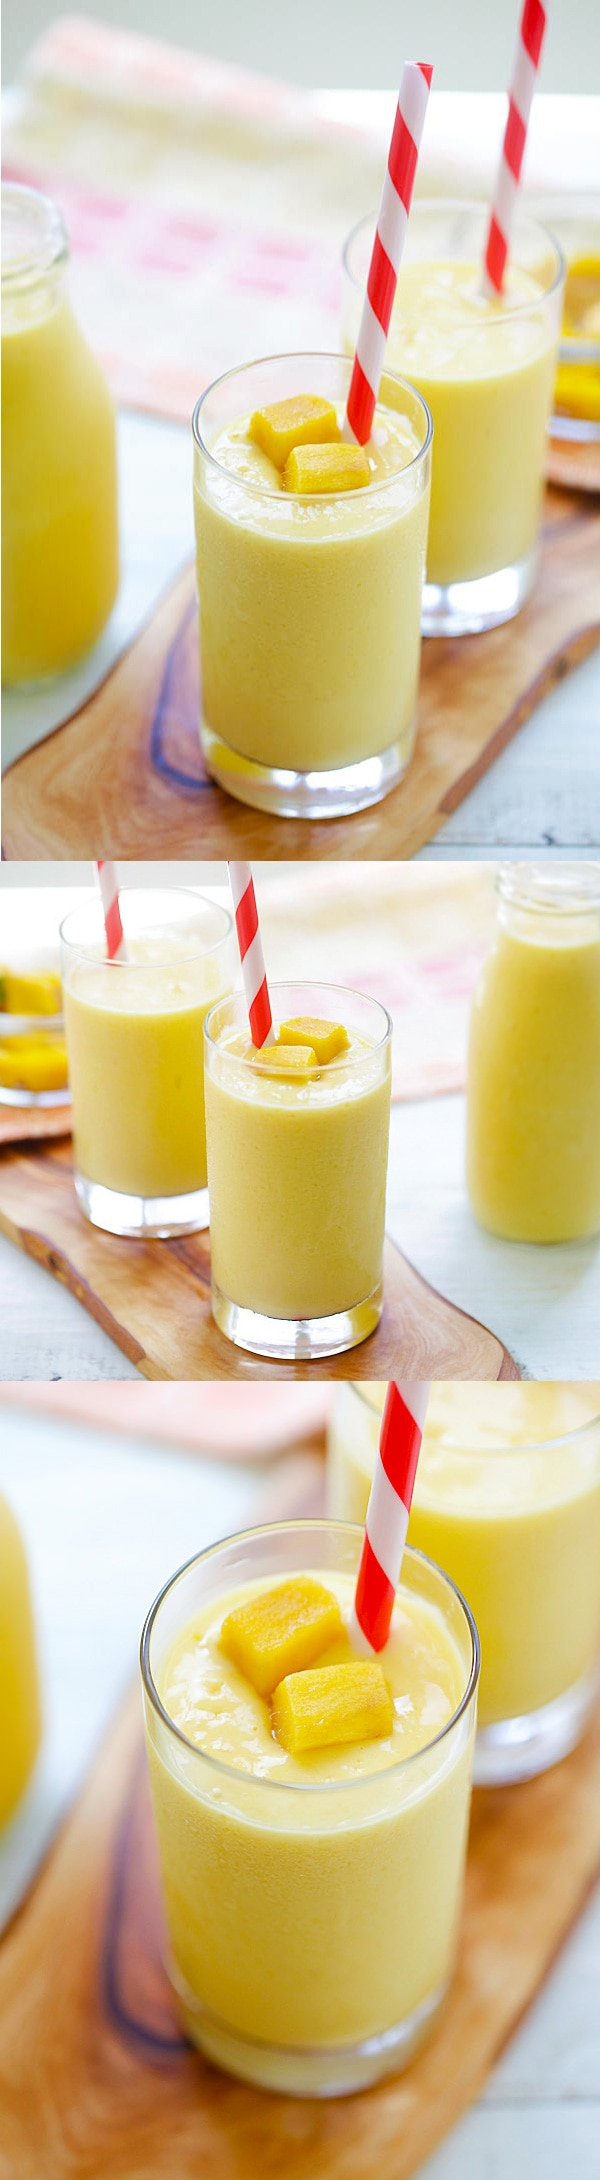 An easy to make recipe for Mango Lassi, a rich, popular Indian beverage with fresh mango, milk, yogurt, and honey. | rasamalaysia.com